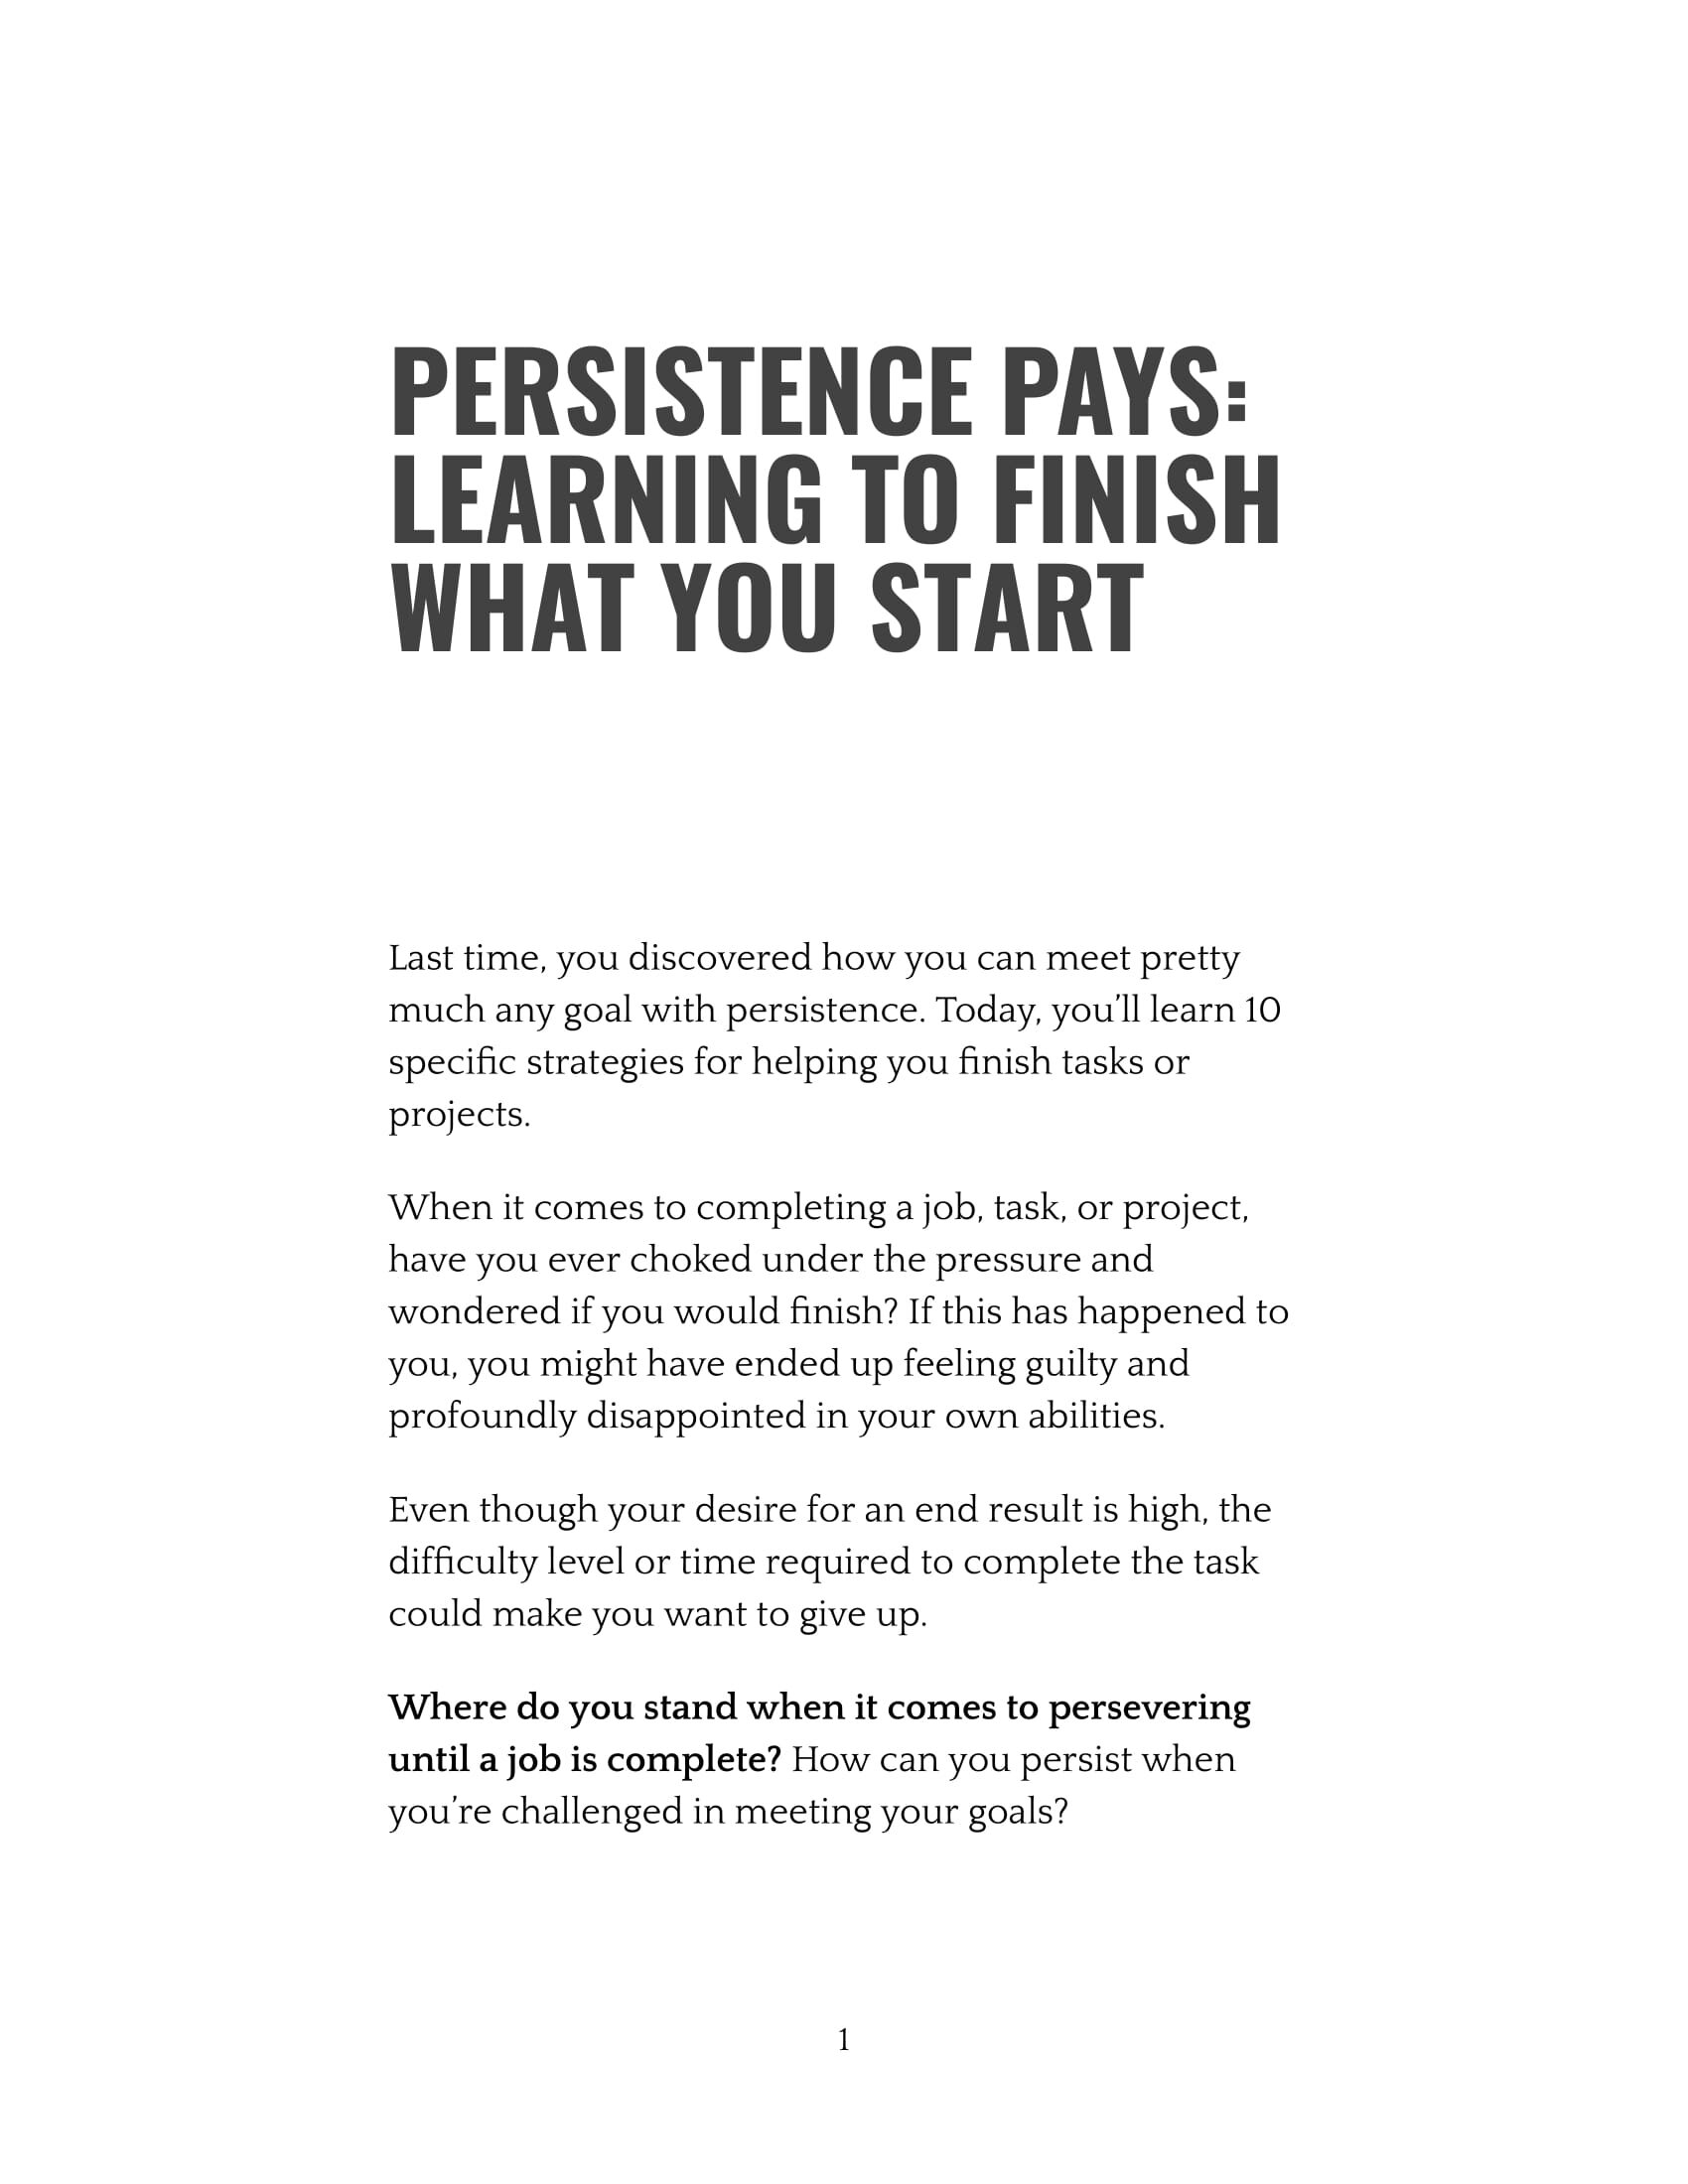 Persistence Pays Learning To Finish What You Start-1.jpg